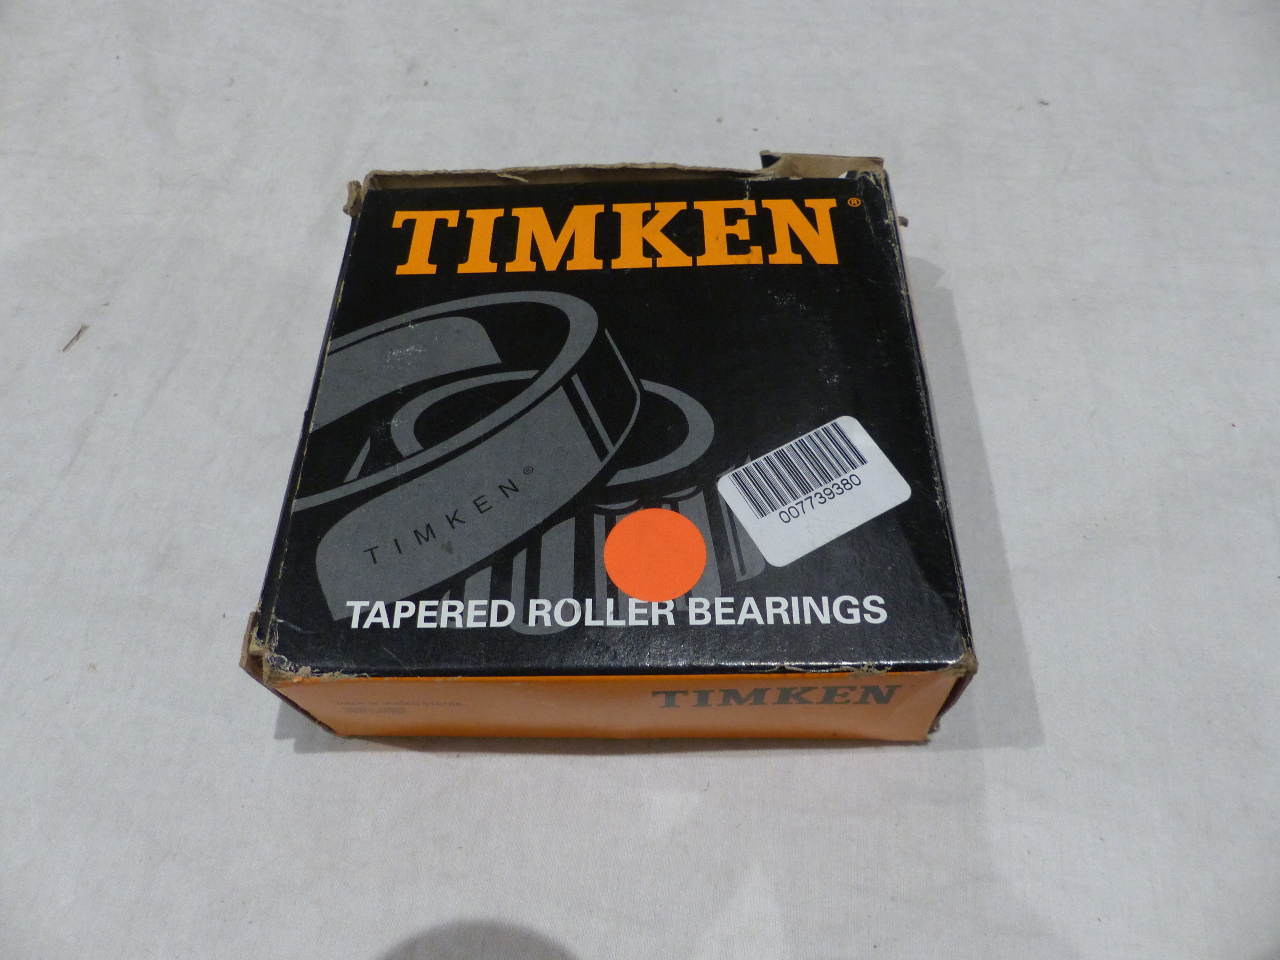 TIMKEN GENUINE 749 TRB TAPERED ROLLER BEARING CONE 749 TRB